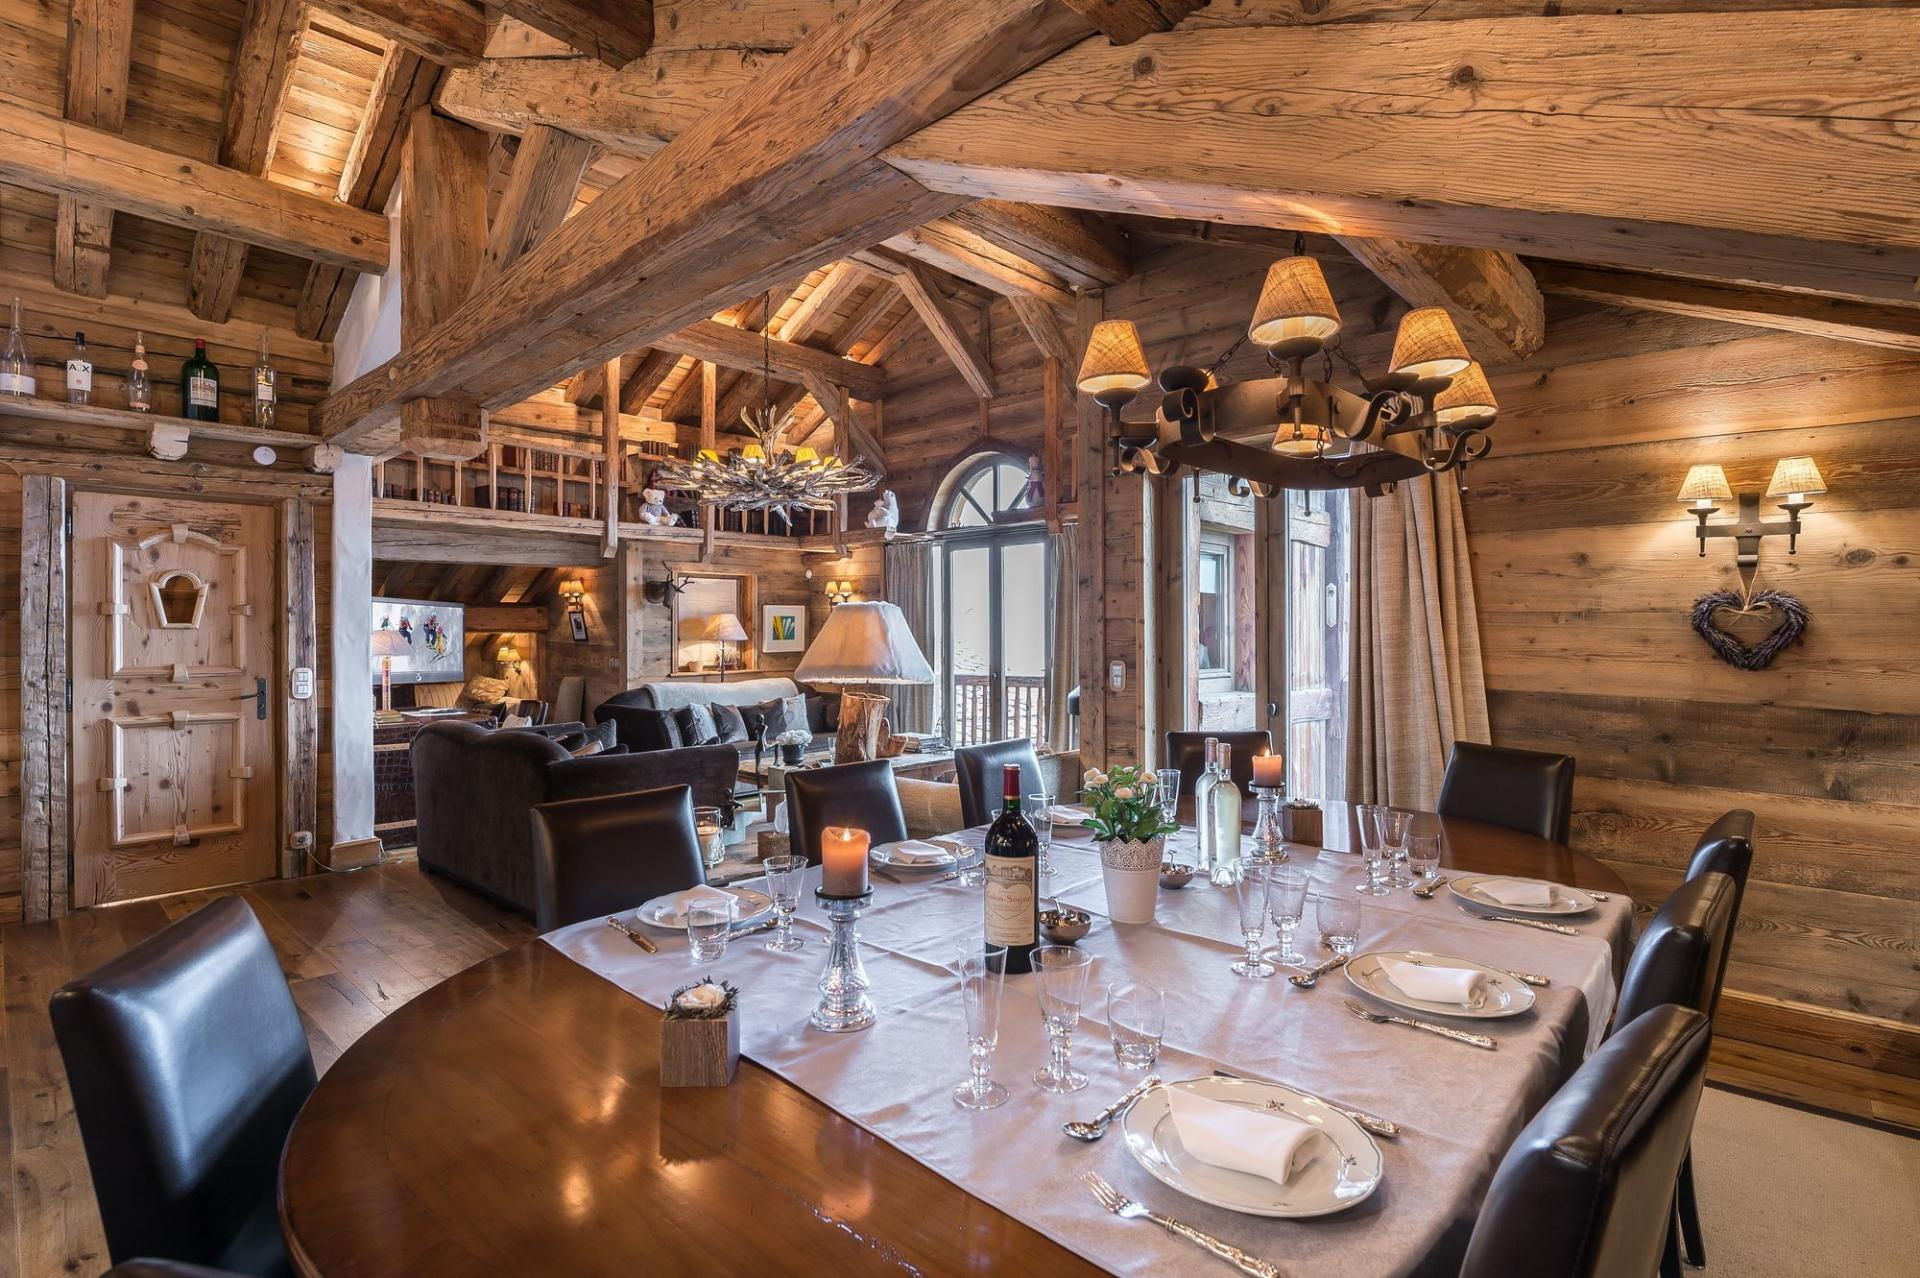 A BEAUTIFUL LUXURY CHALET TO RENT  IN COURCHEVEL IN THE FRENCH ALPS